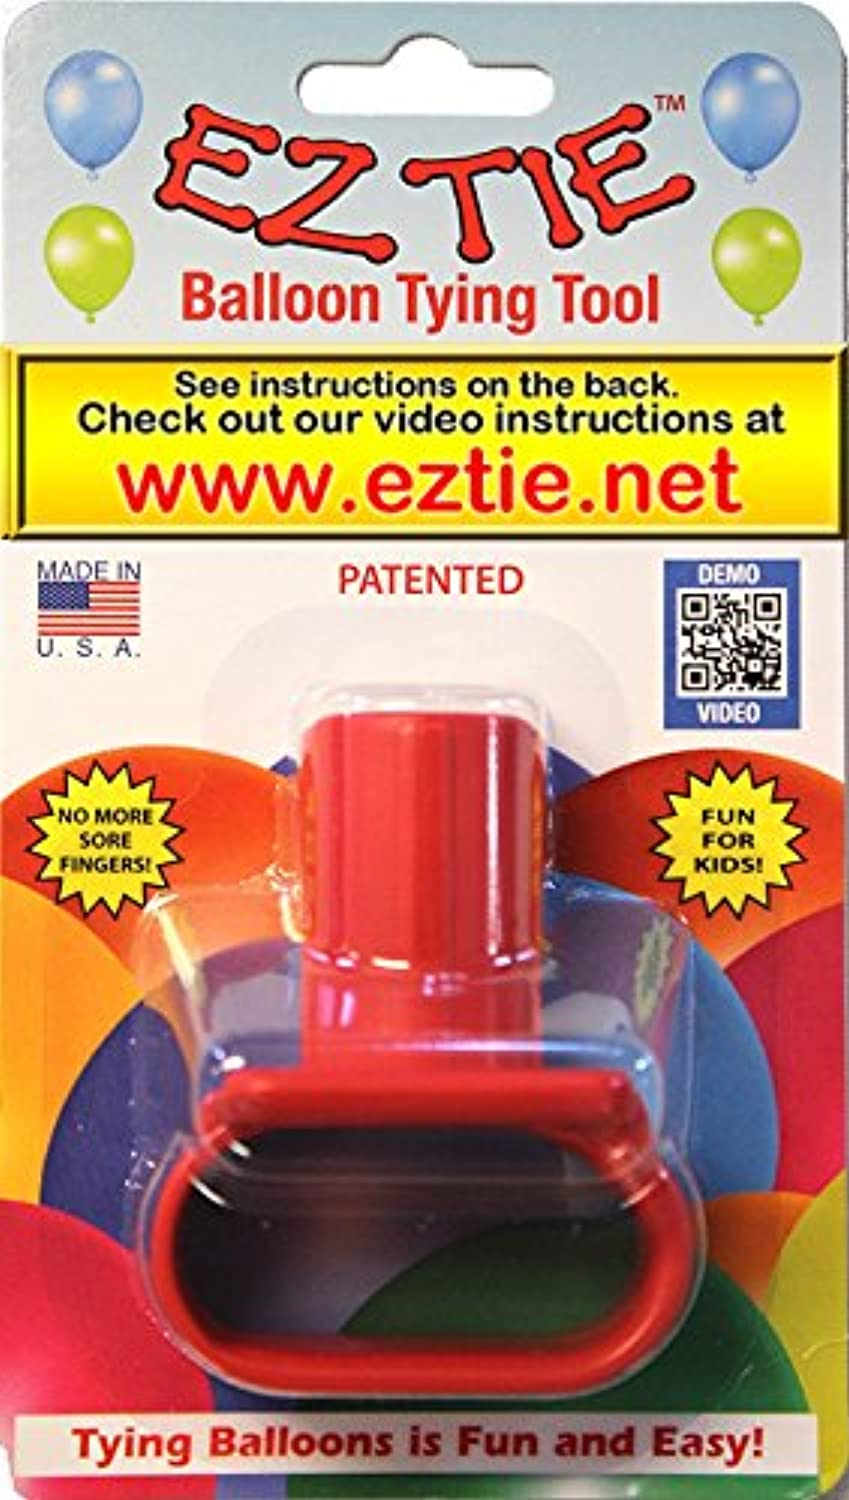 EZ Tie - Balloon Tying Tool for Party Balloons- Partys Supplies - Works for Helium Balloons with Ribbon - Makes Balloon Arches by EZ Tie